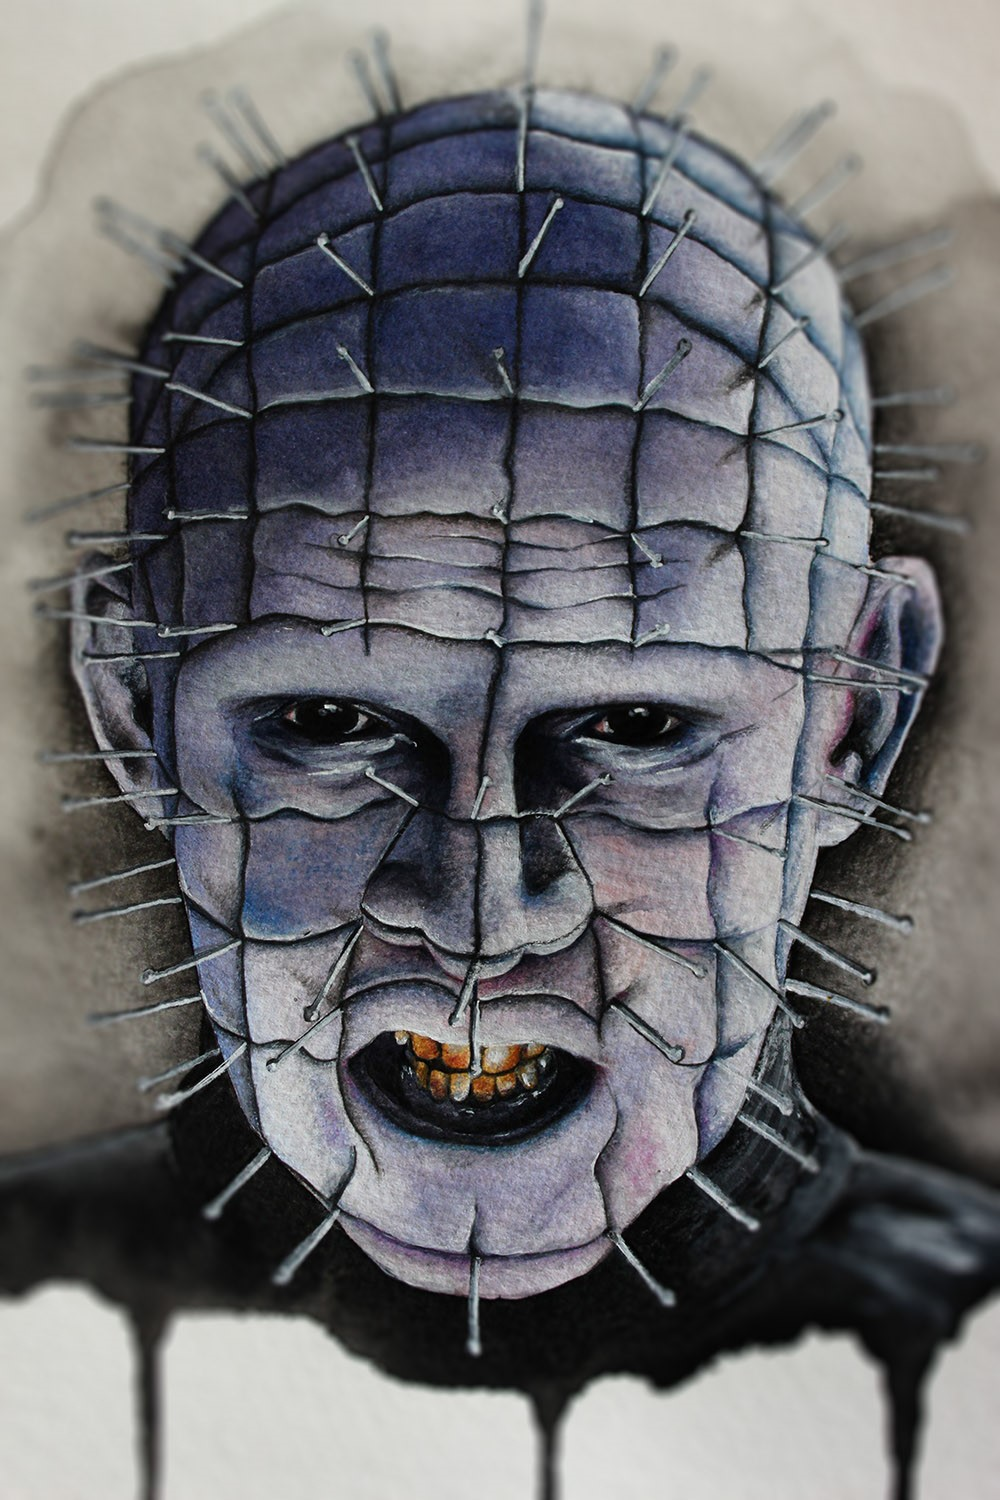 Fan Art - Pinhead Cenobite